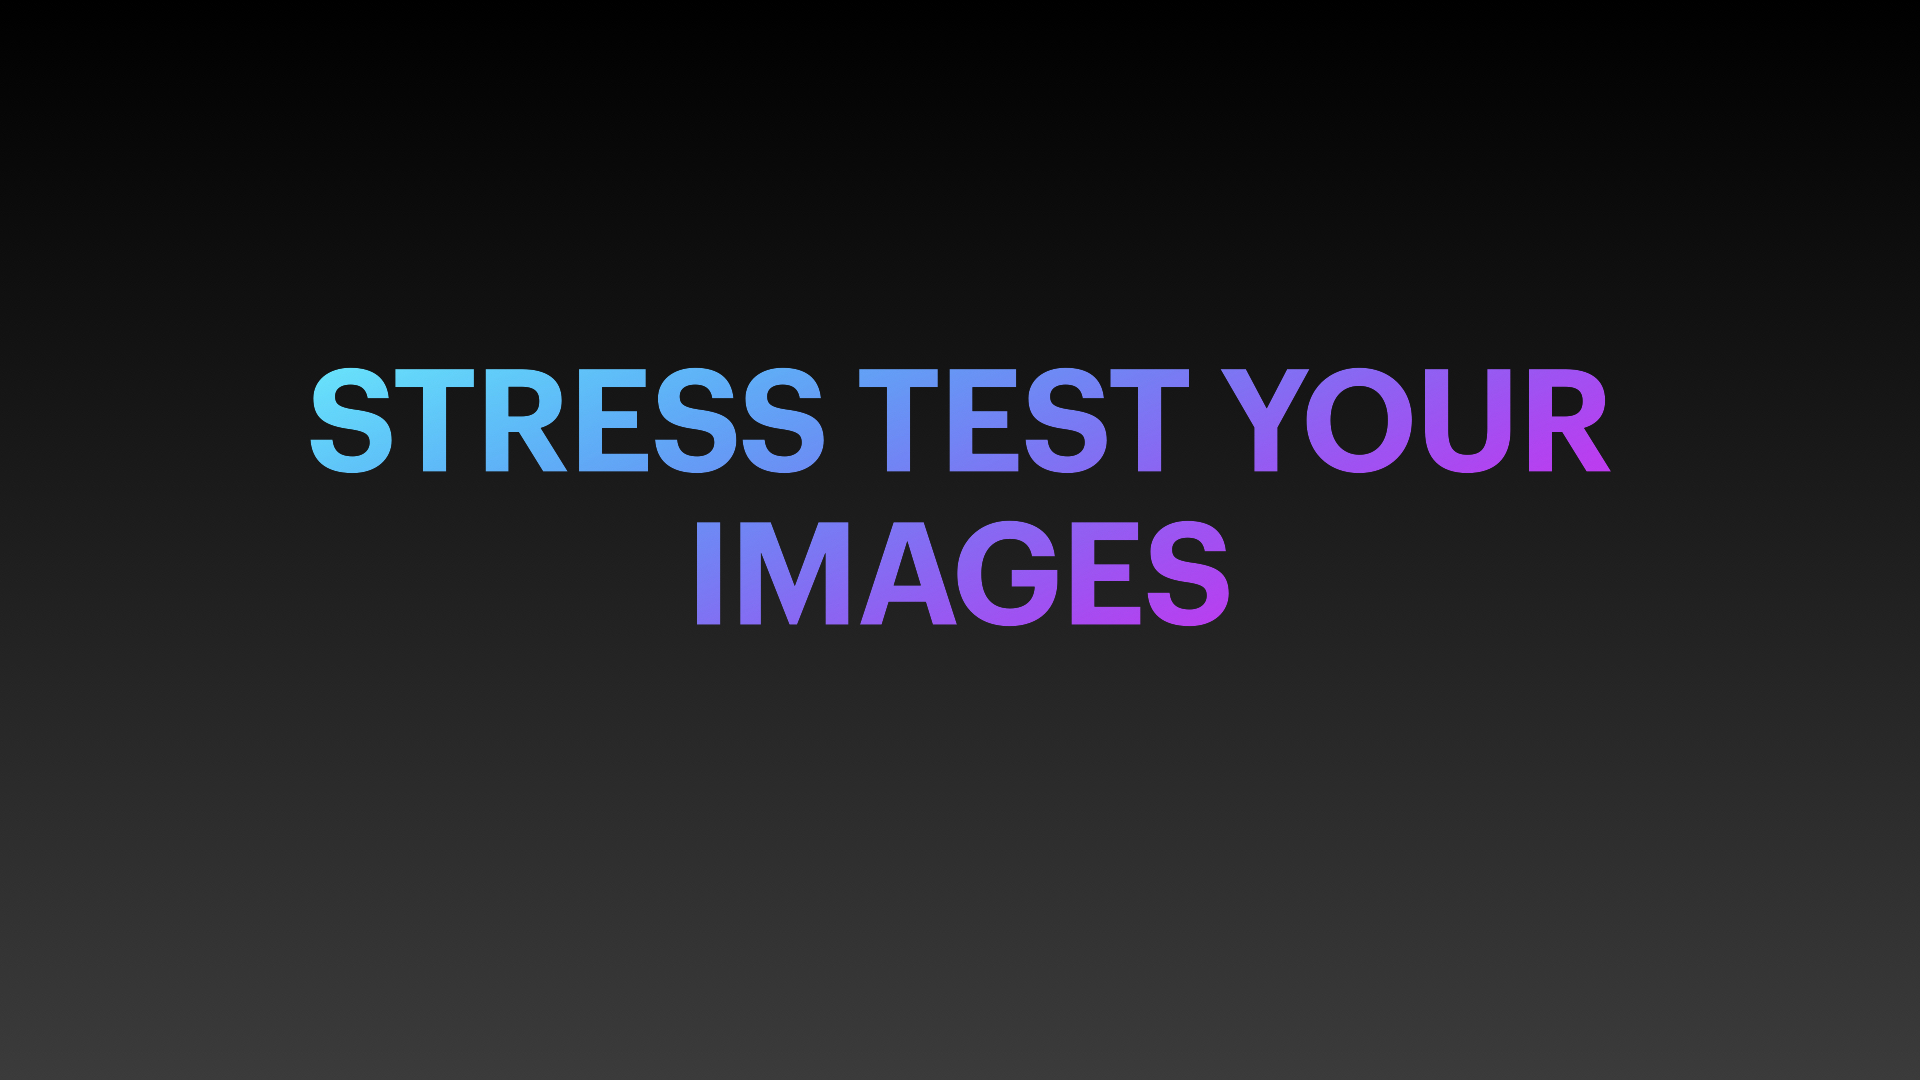 Stress test your images